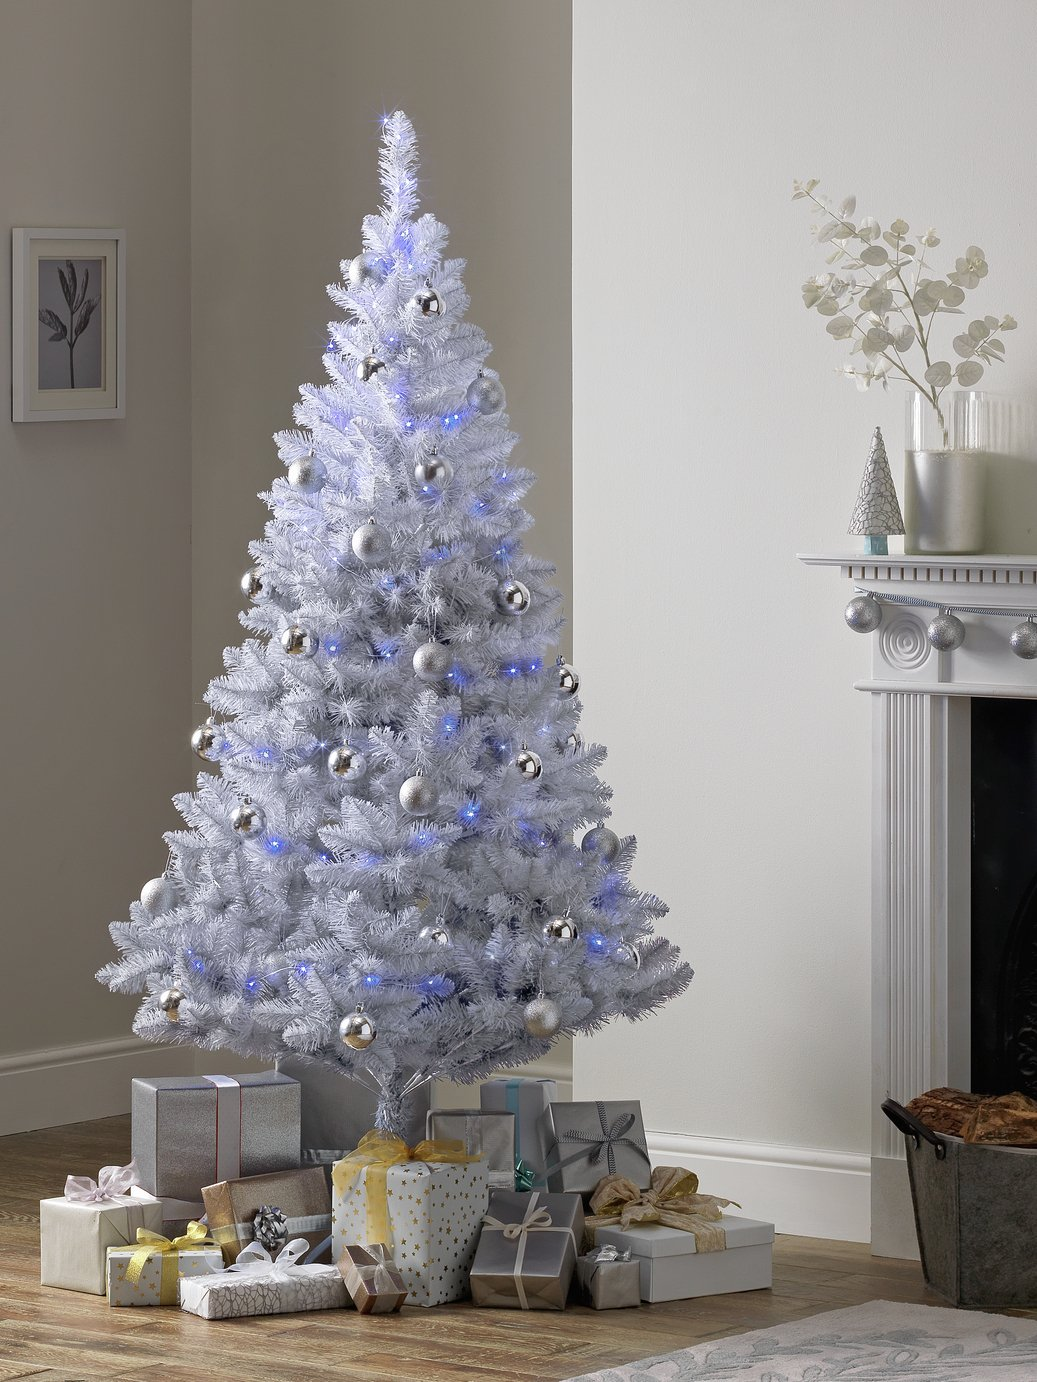 Argos Home 6ft Christmas Tree - Grey Ombre